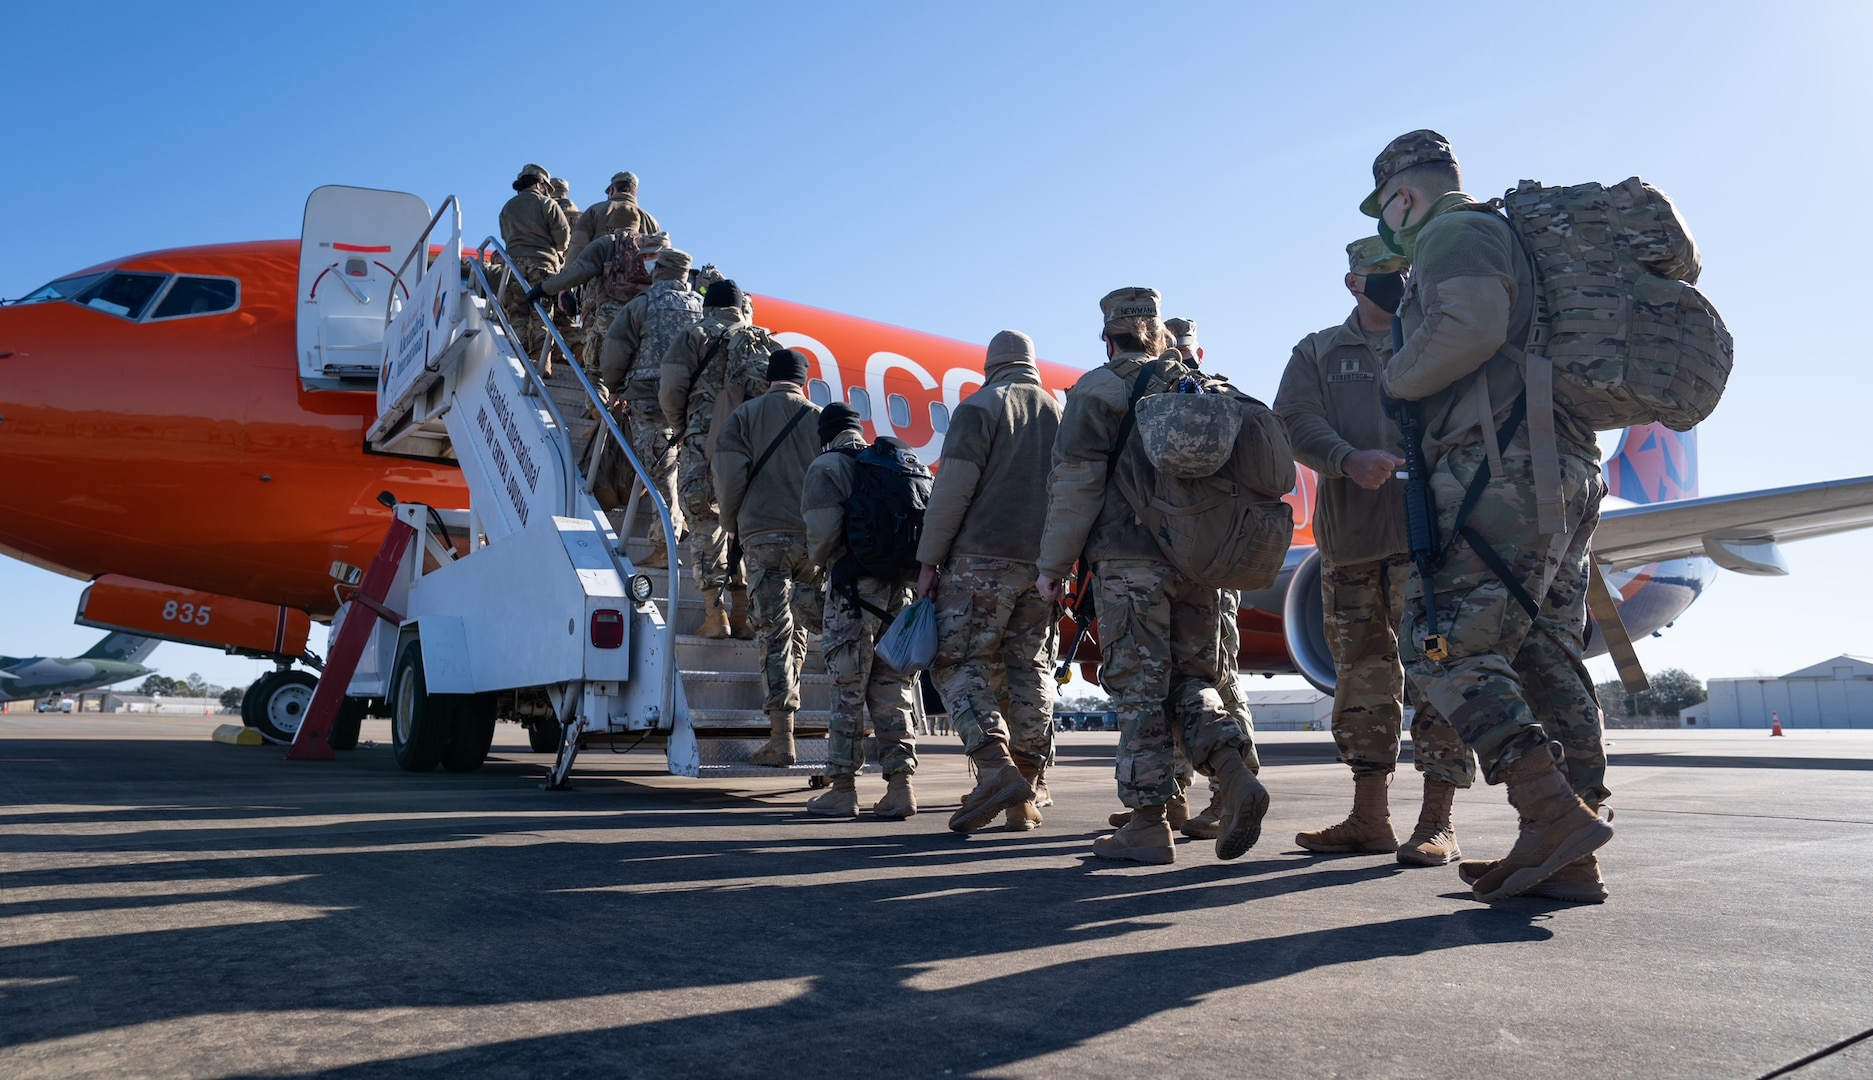 Louisiana National Guard Soldiers and Airmen from throughout the state board a plane to Washington, D.C., from Alexandria, La., on Jan. 16, 2021. They will support the District of Columbia National Guard and local and federal authorities through the presidential inauguration in the nation's capital.